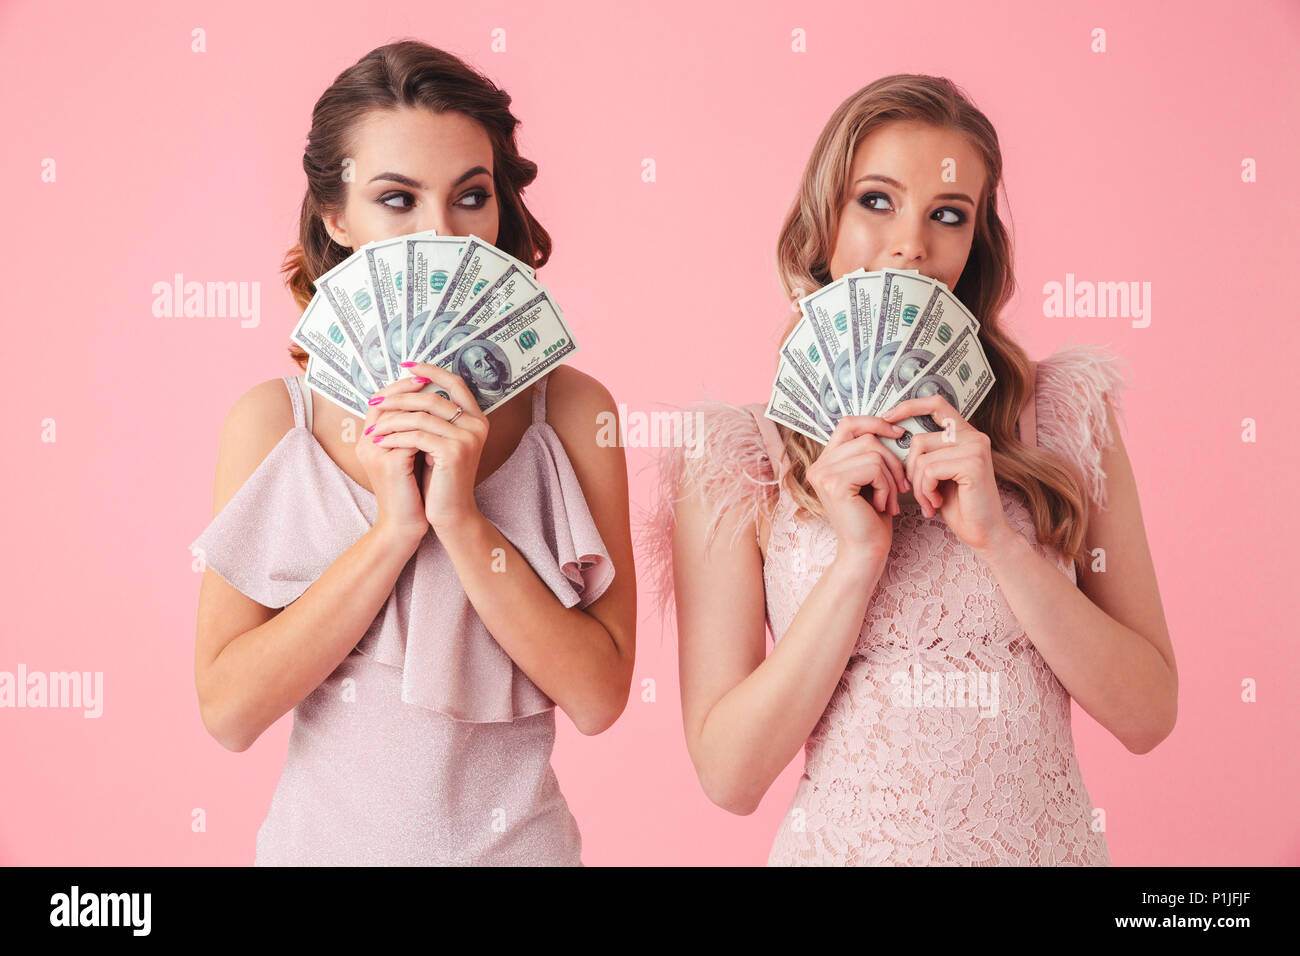 Two Women With Fancy Dresses Imágenes De Stock & Two Women With ...